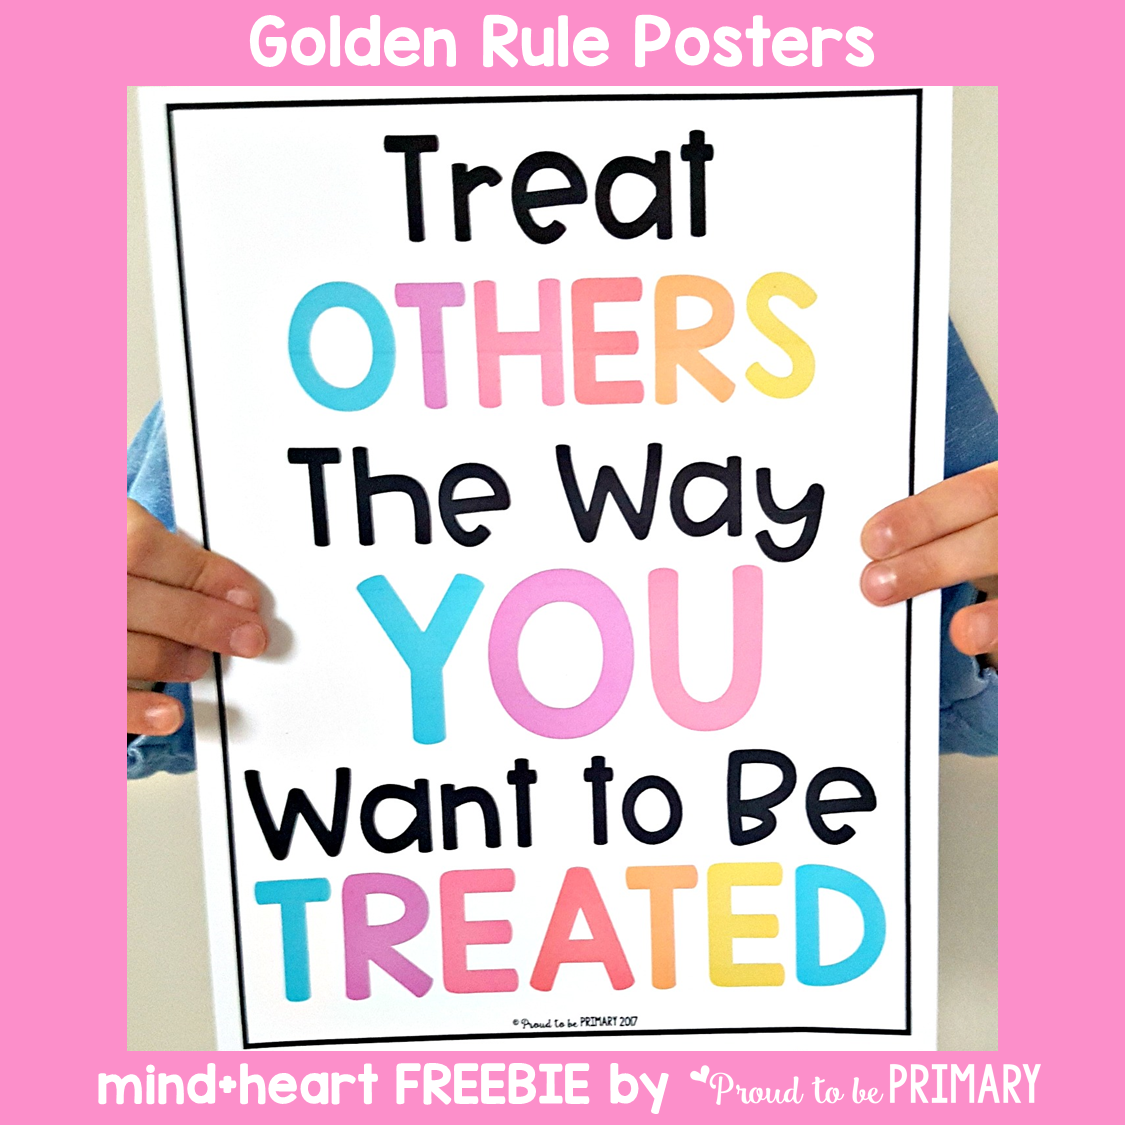 teaching respect - golden rule posters